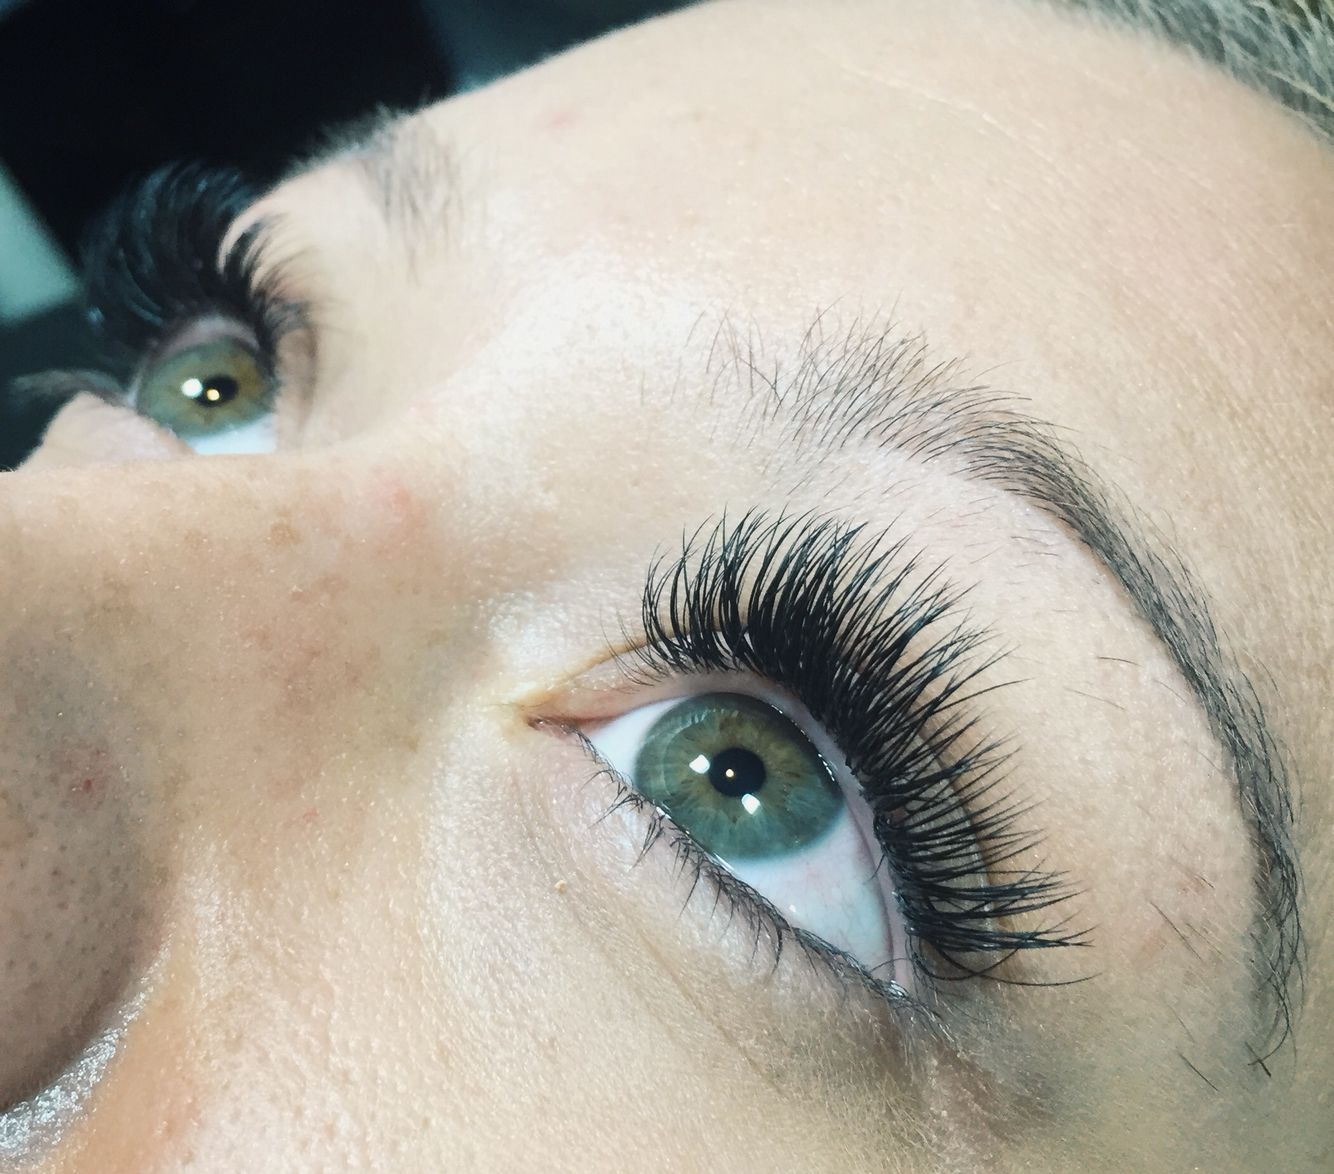 Classic glam eyelash extensions done by me using Lash